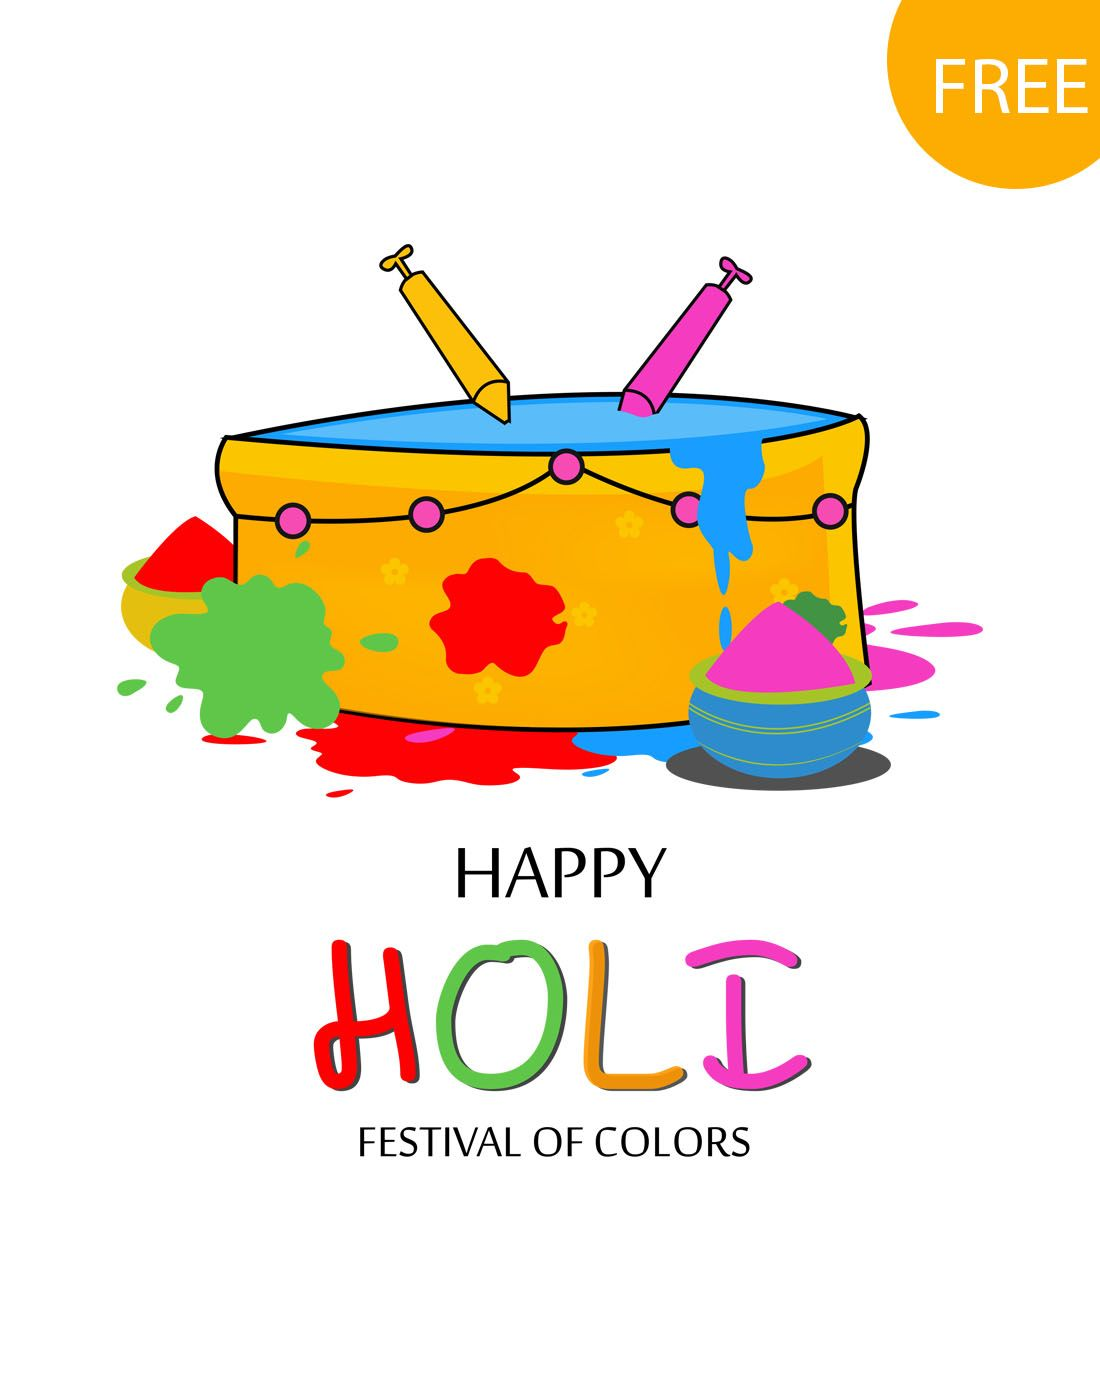 free holi vectors download | Pinterest | Holi, Template and Free